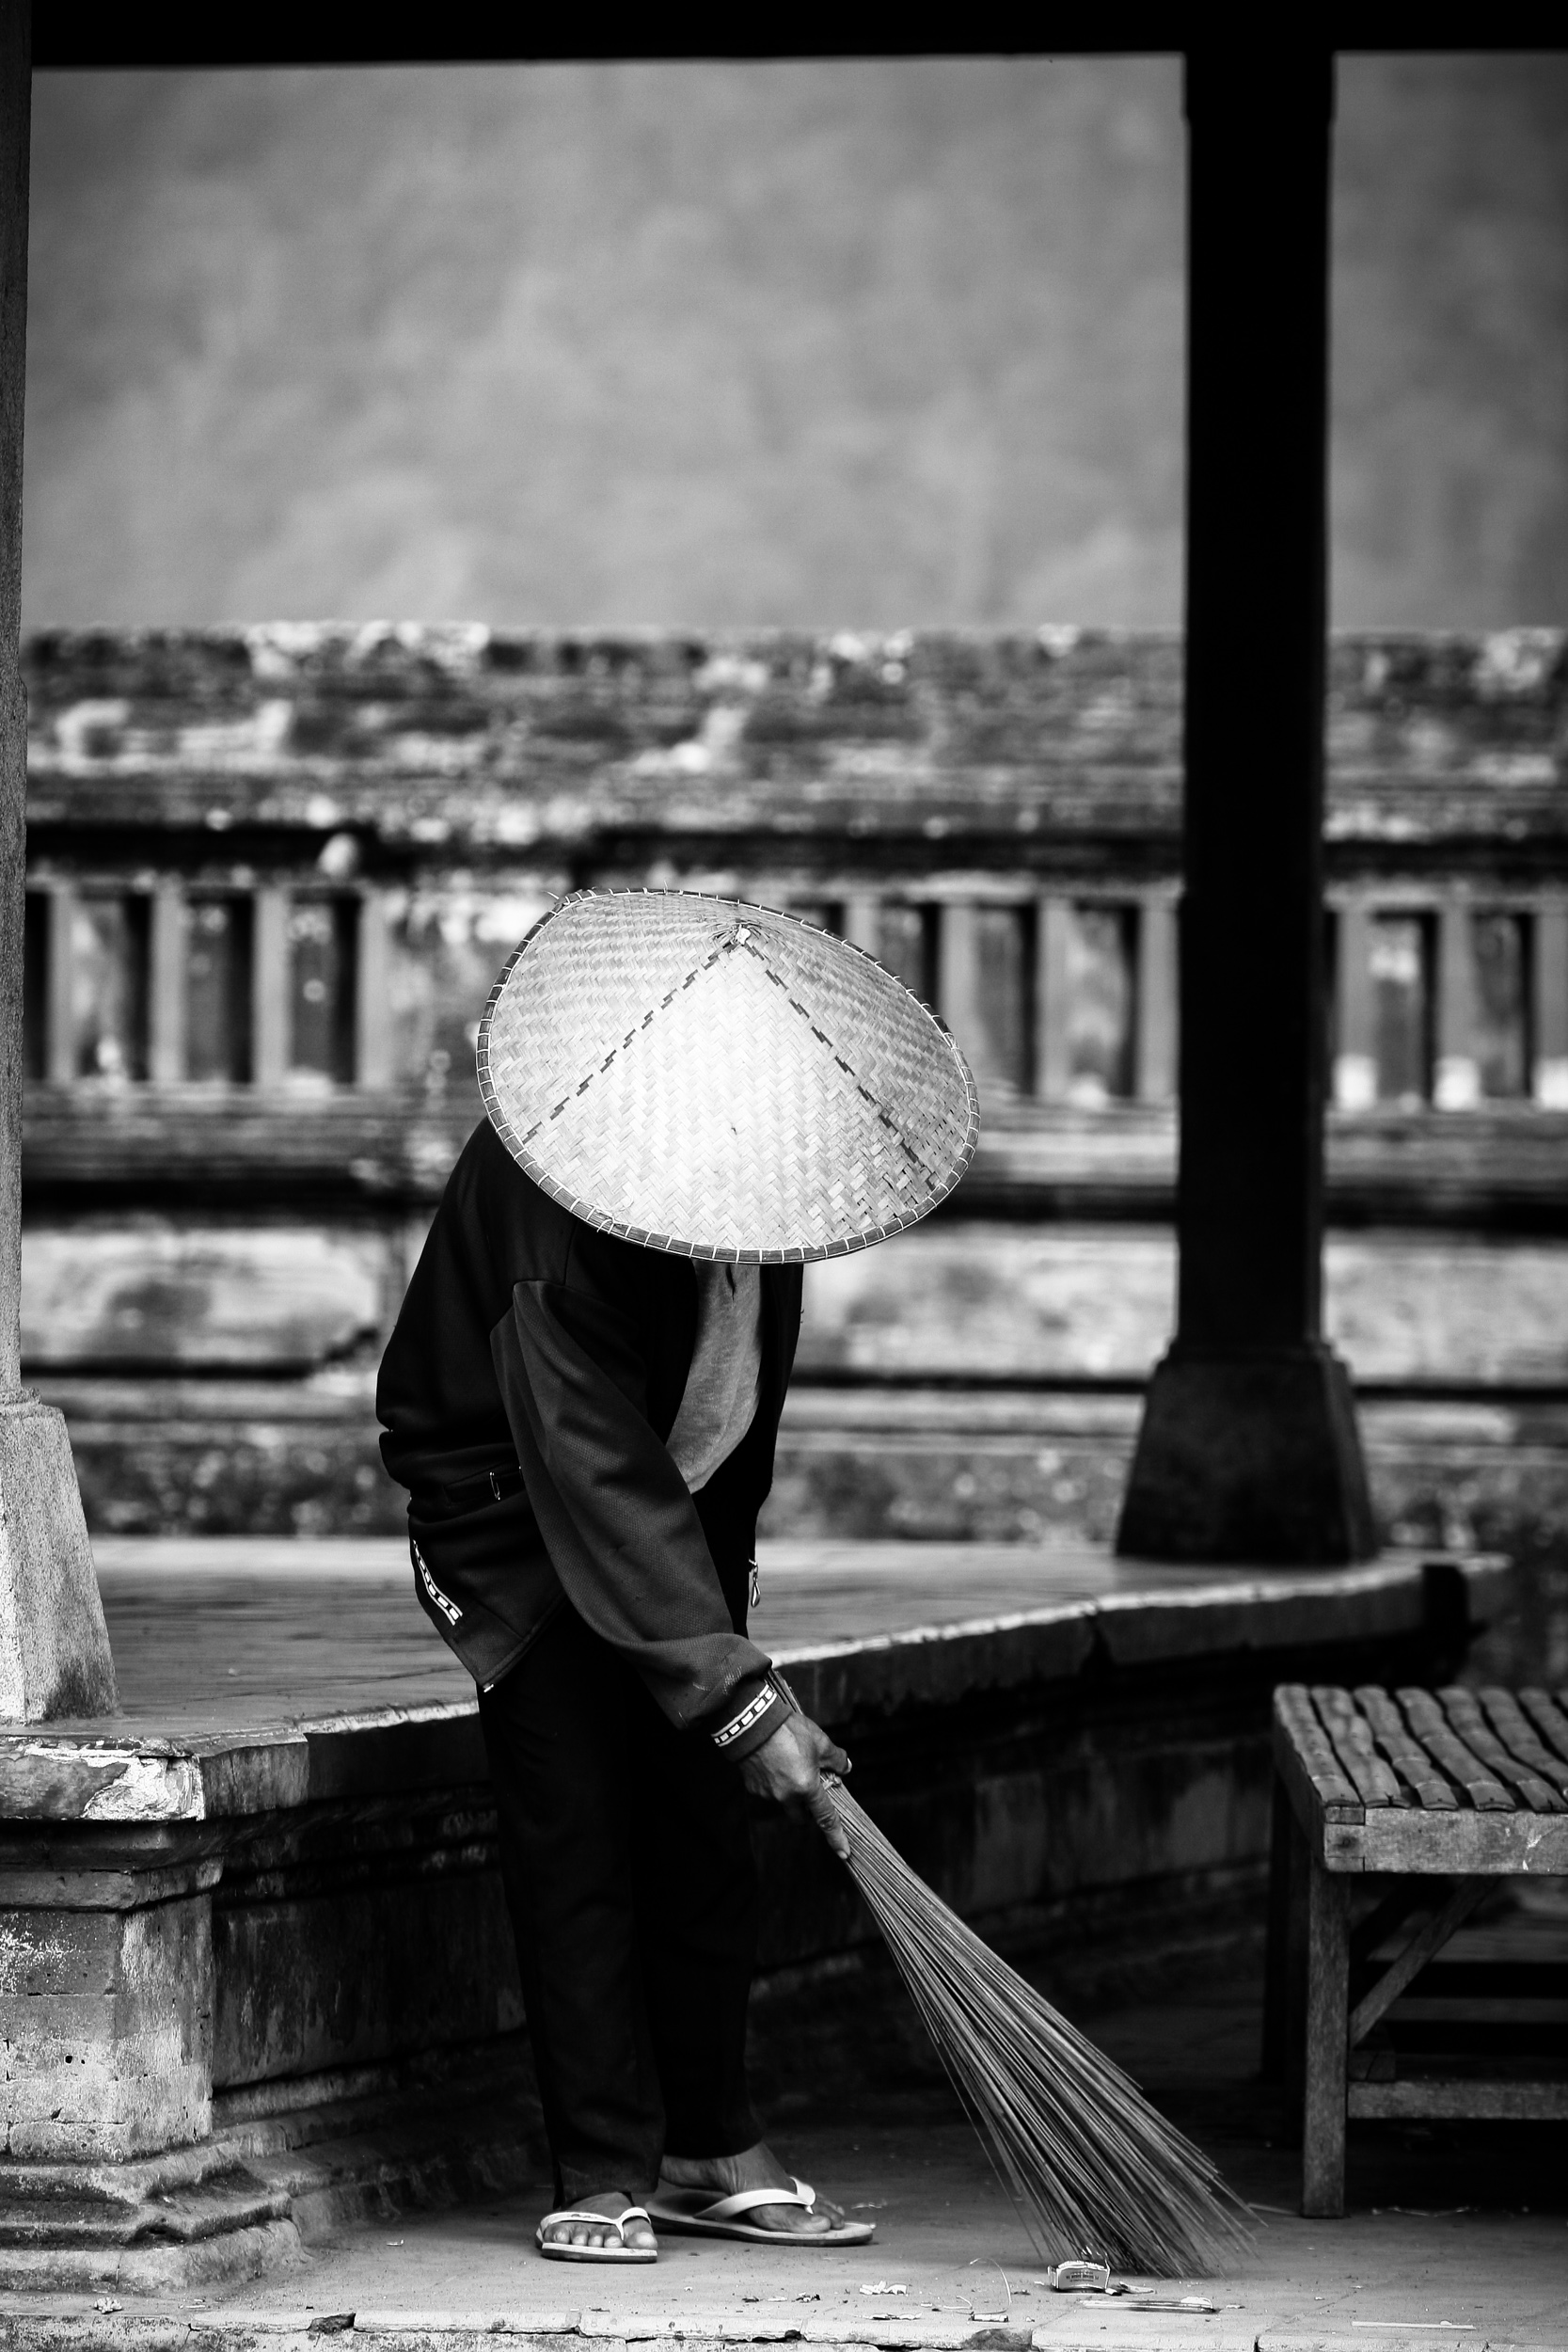 Old man working in the temple, Bali, Indonesia